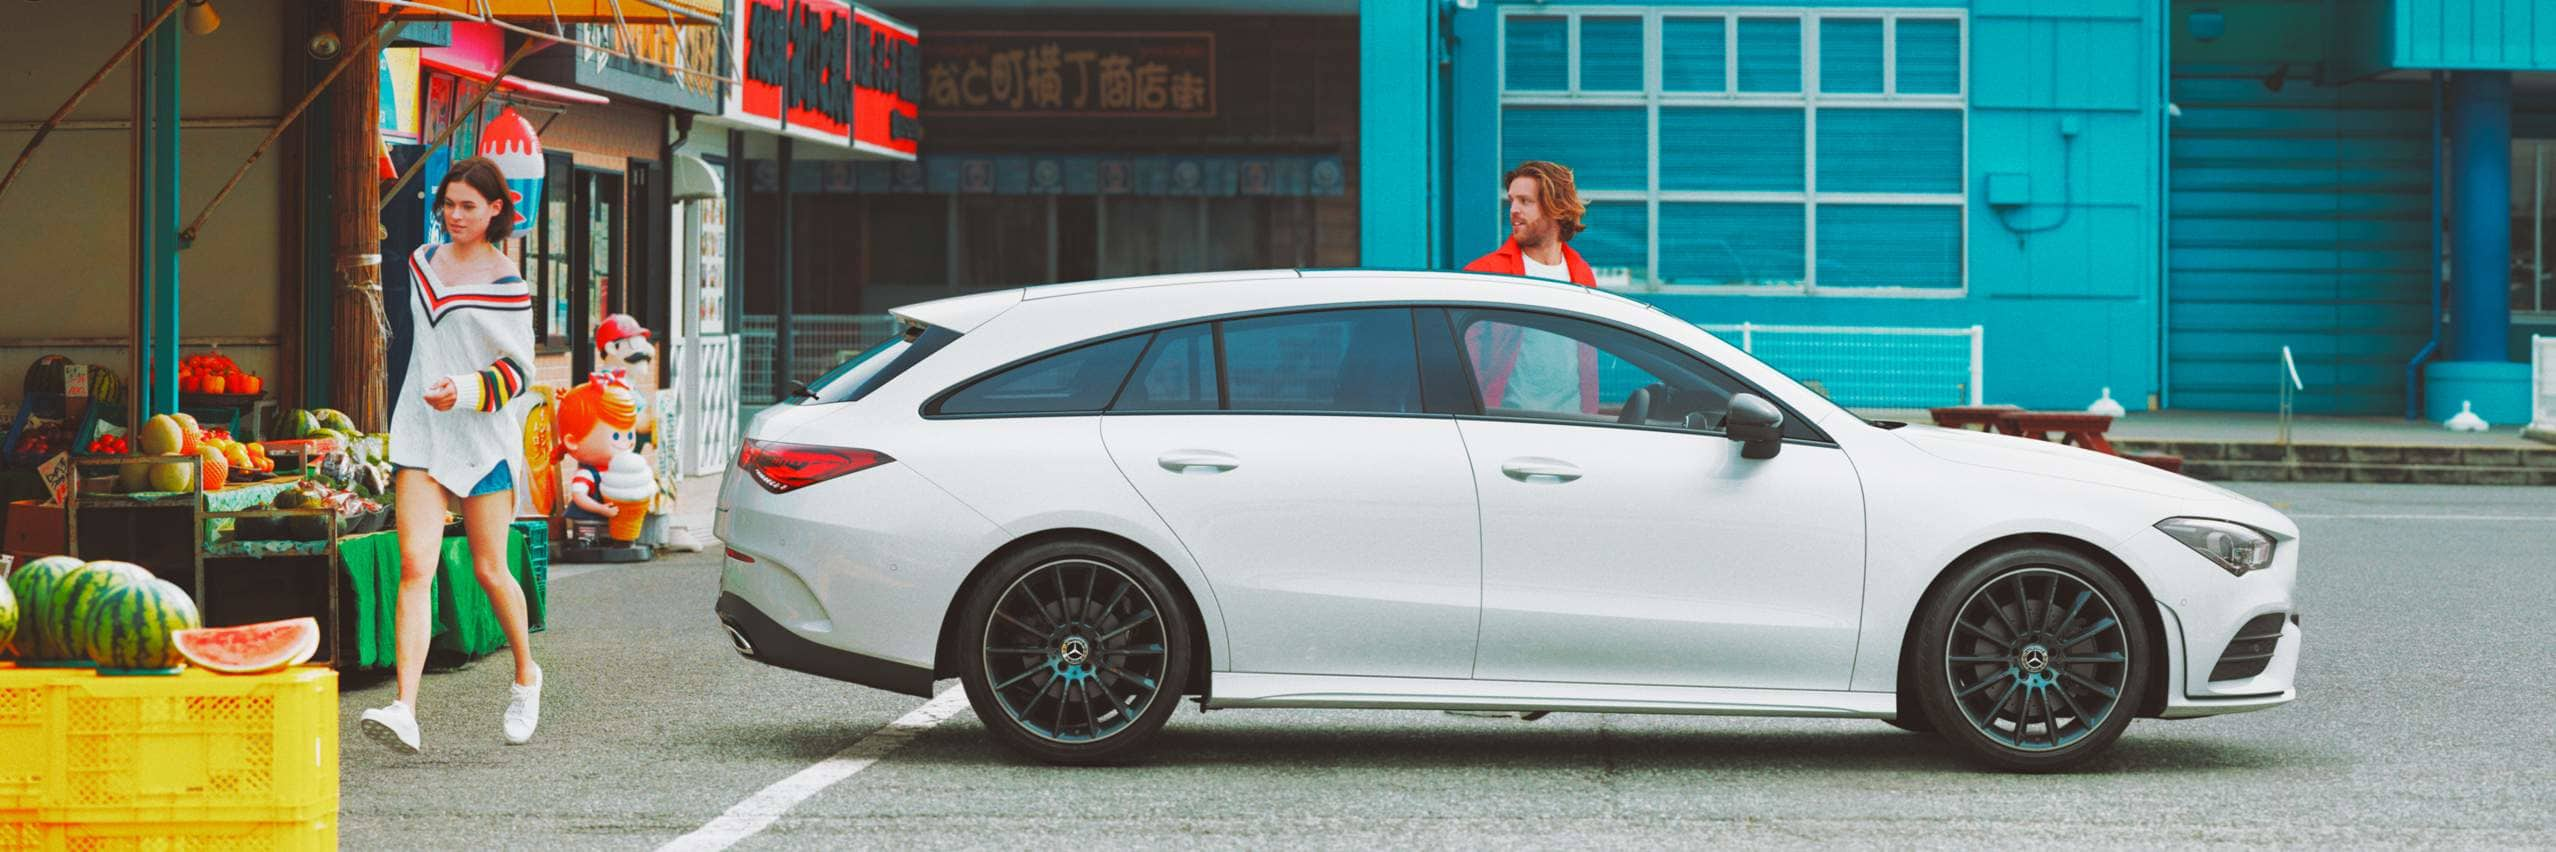 Ціна Mercedes–Benz CLA Shooting Brake